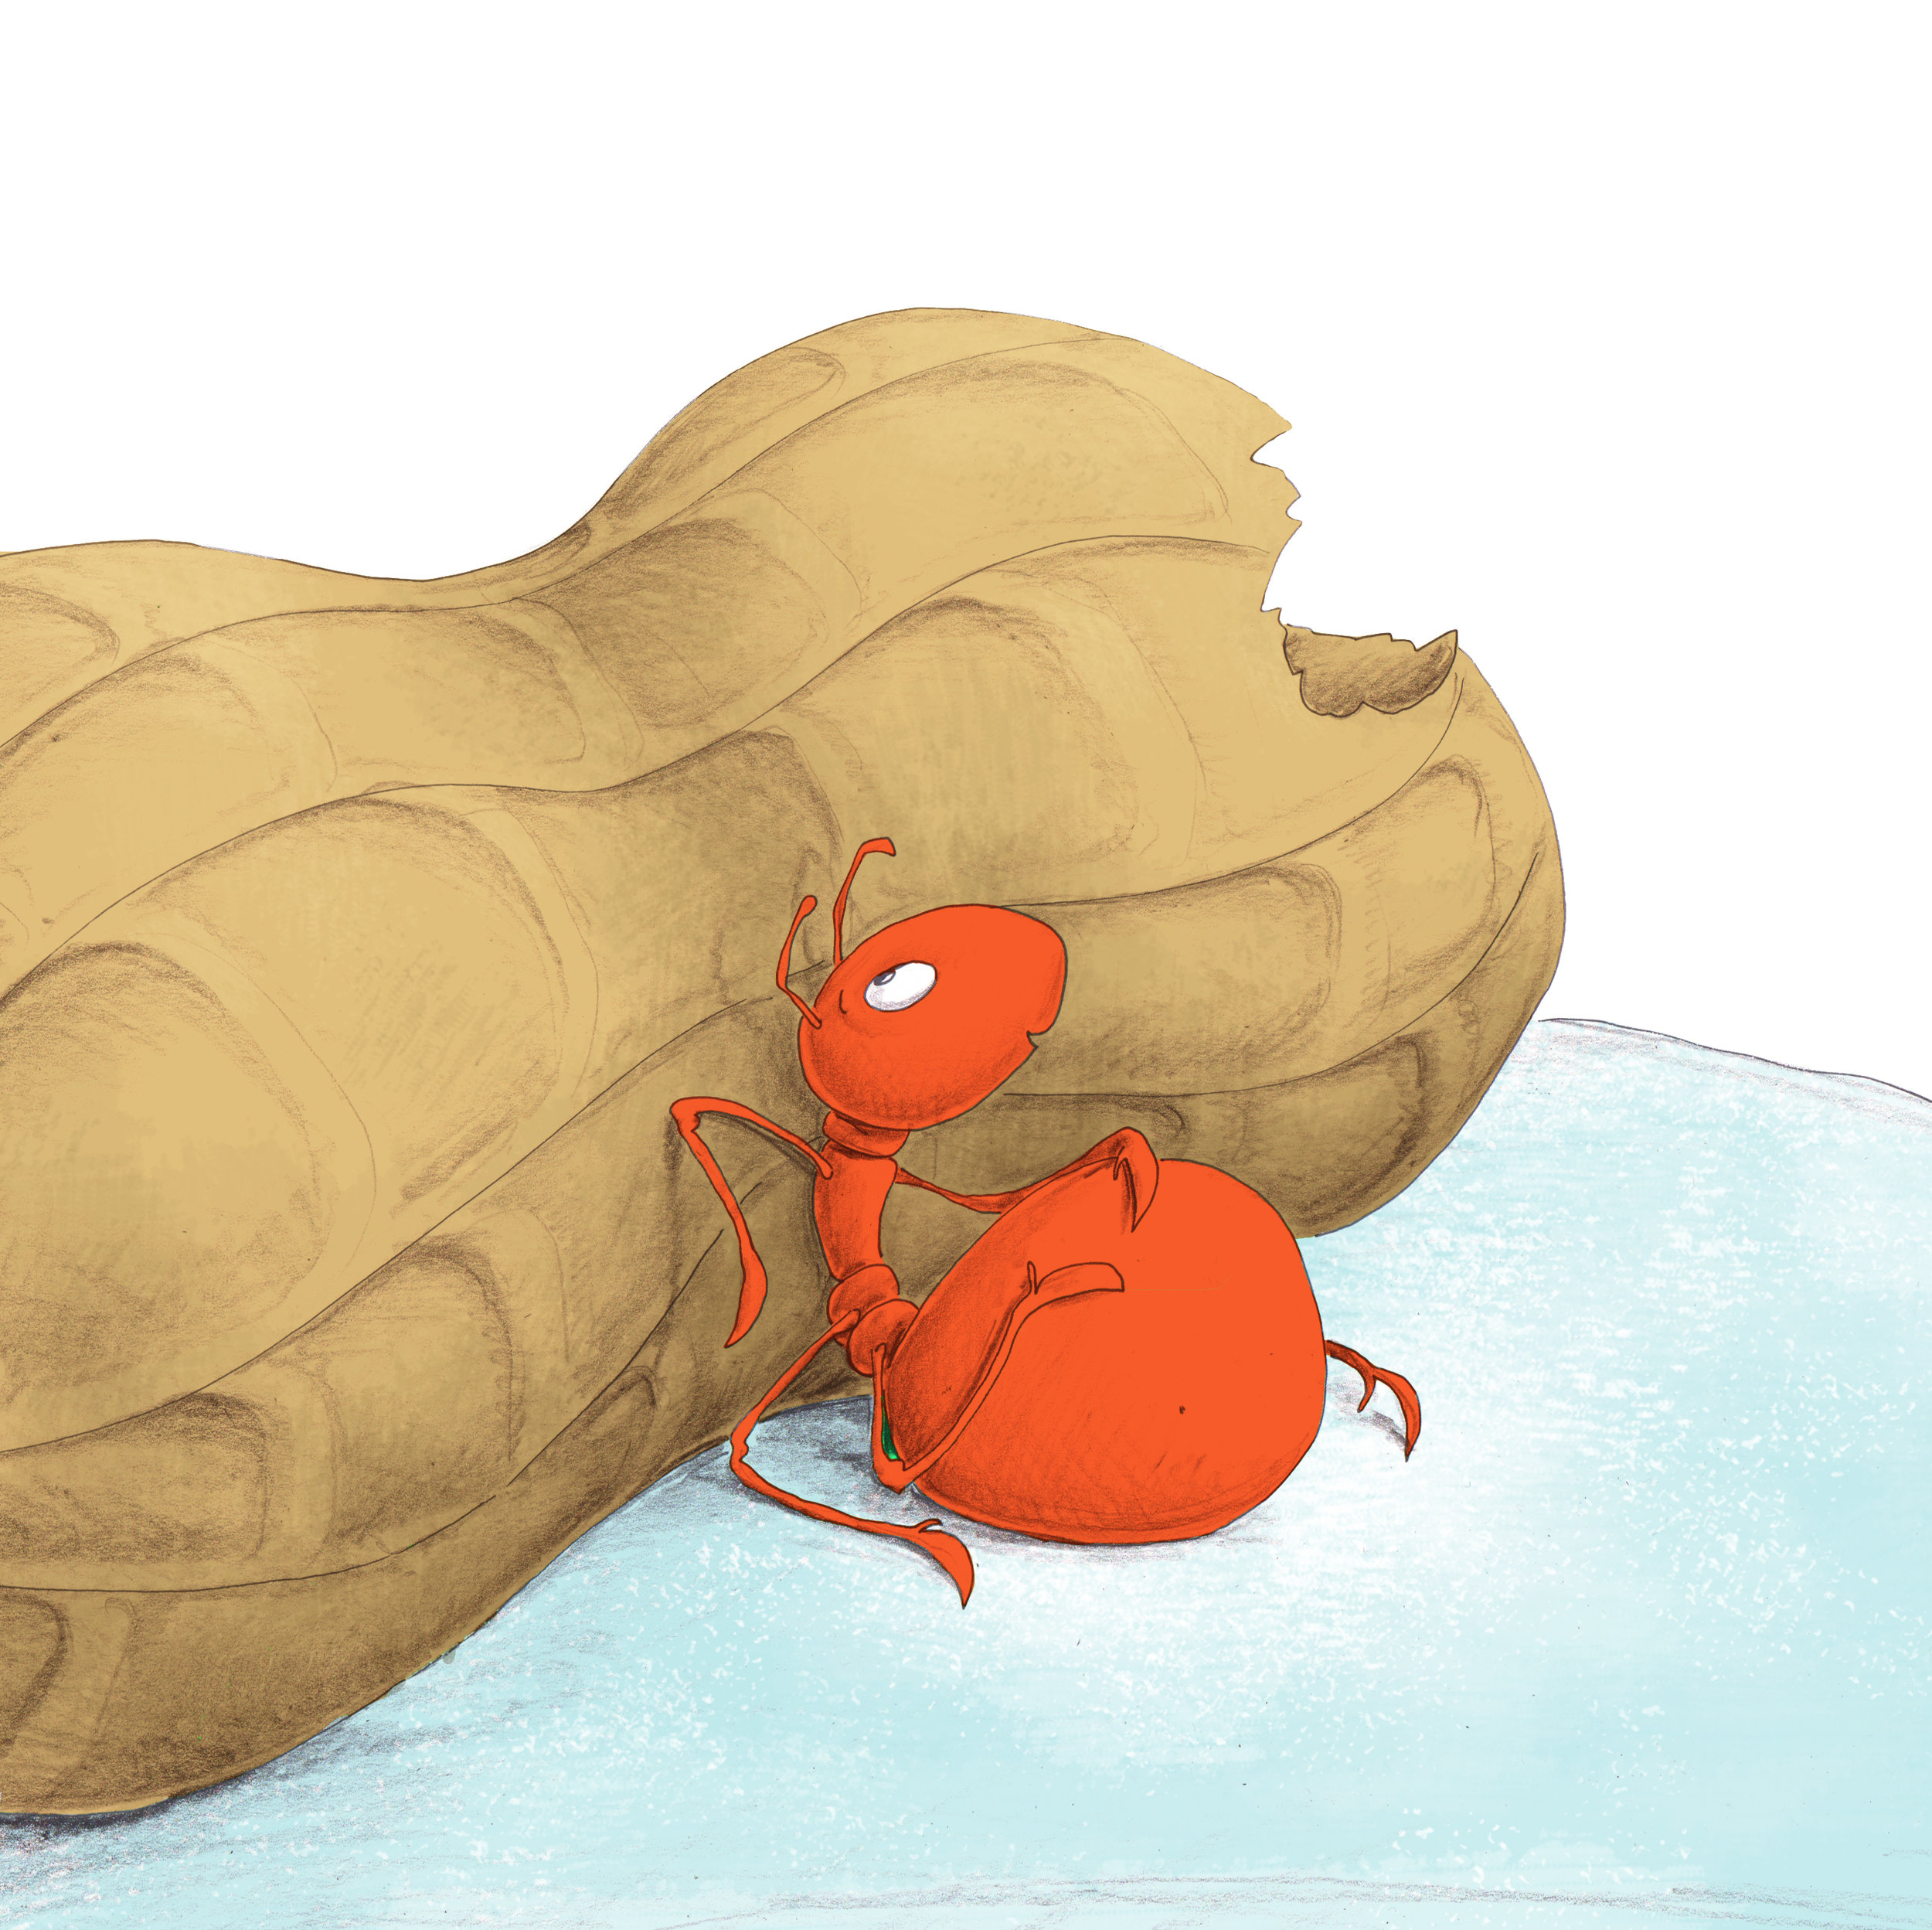 Download image from Little Ant and the Peanut.